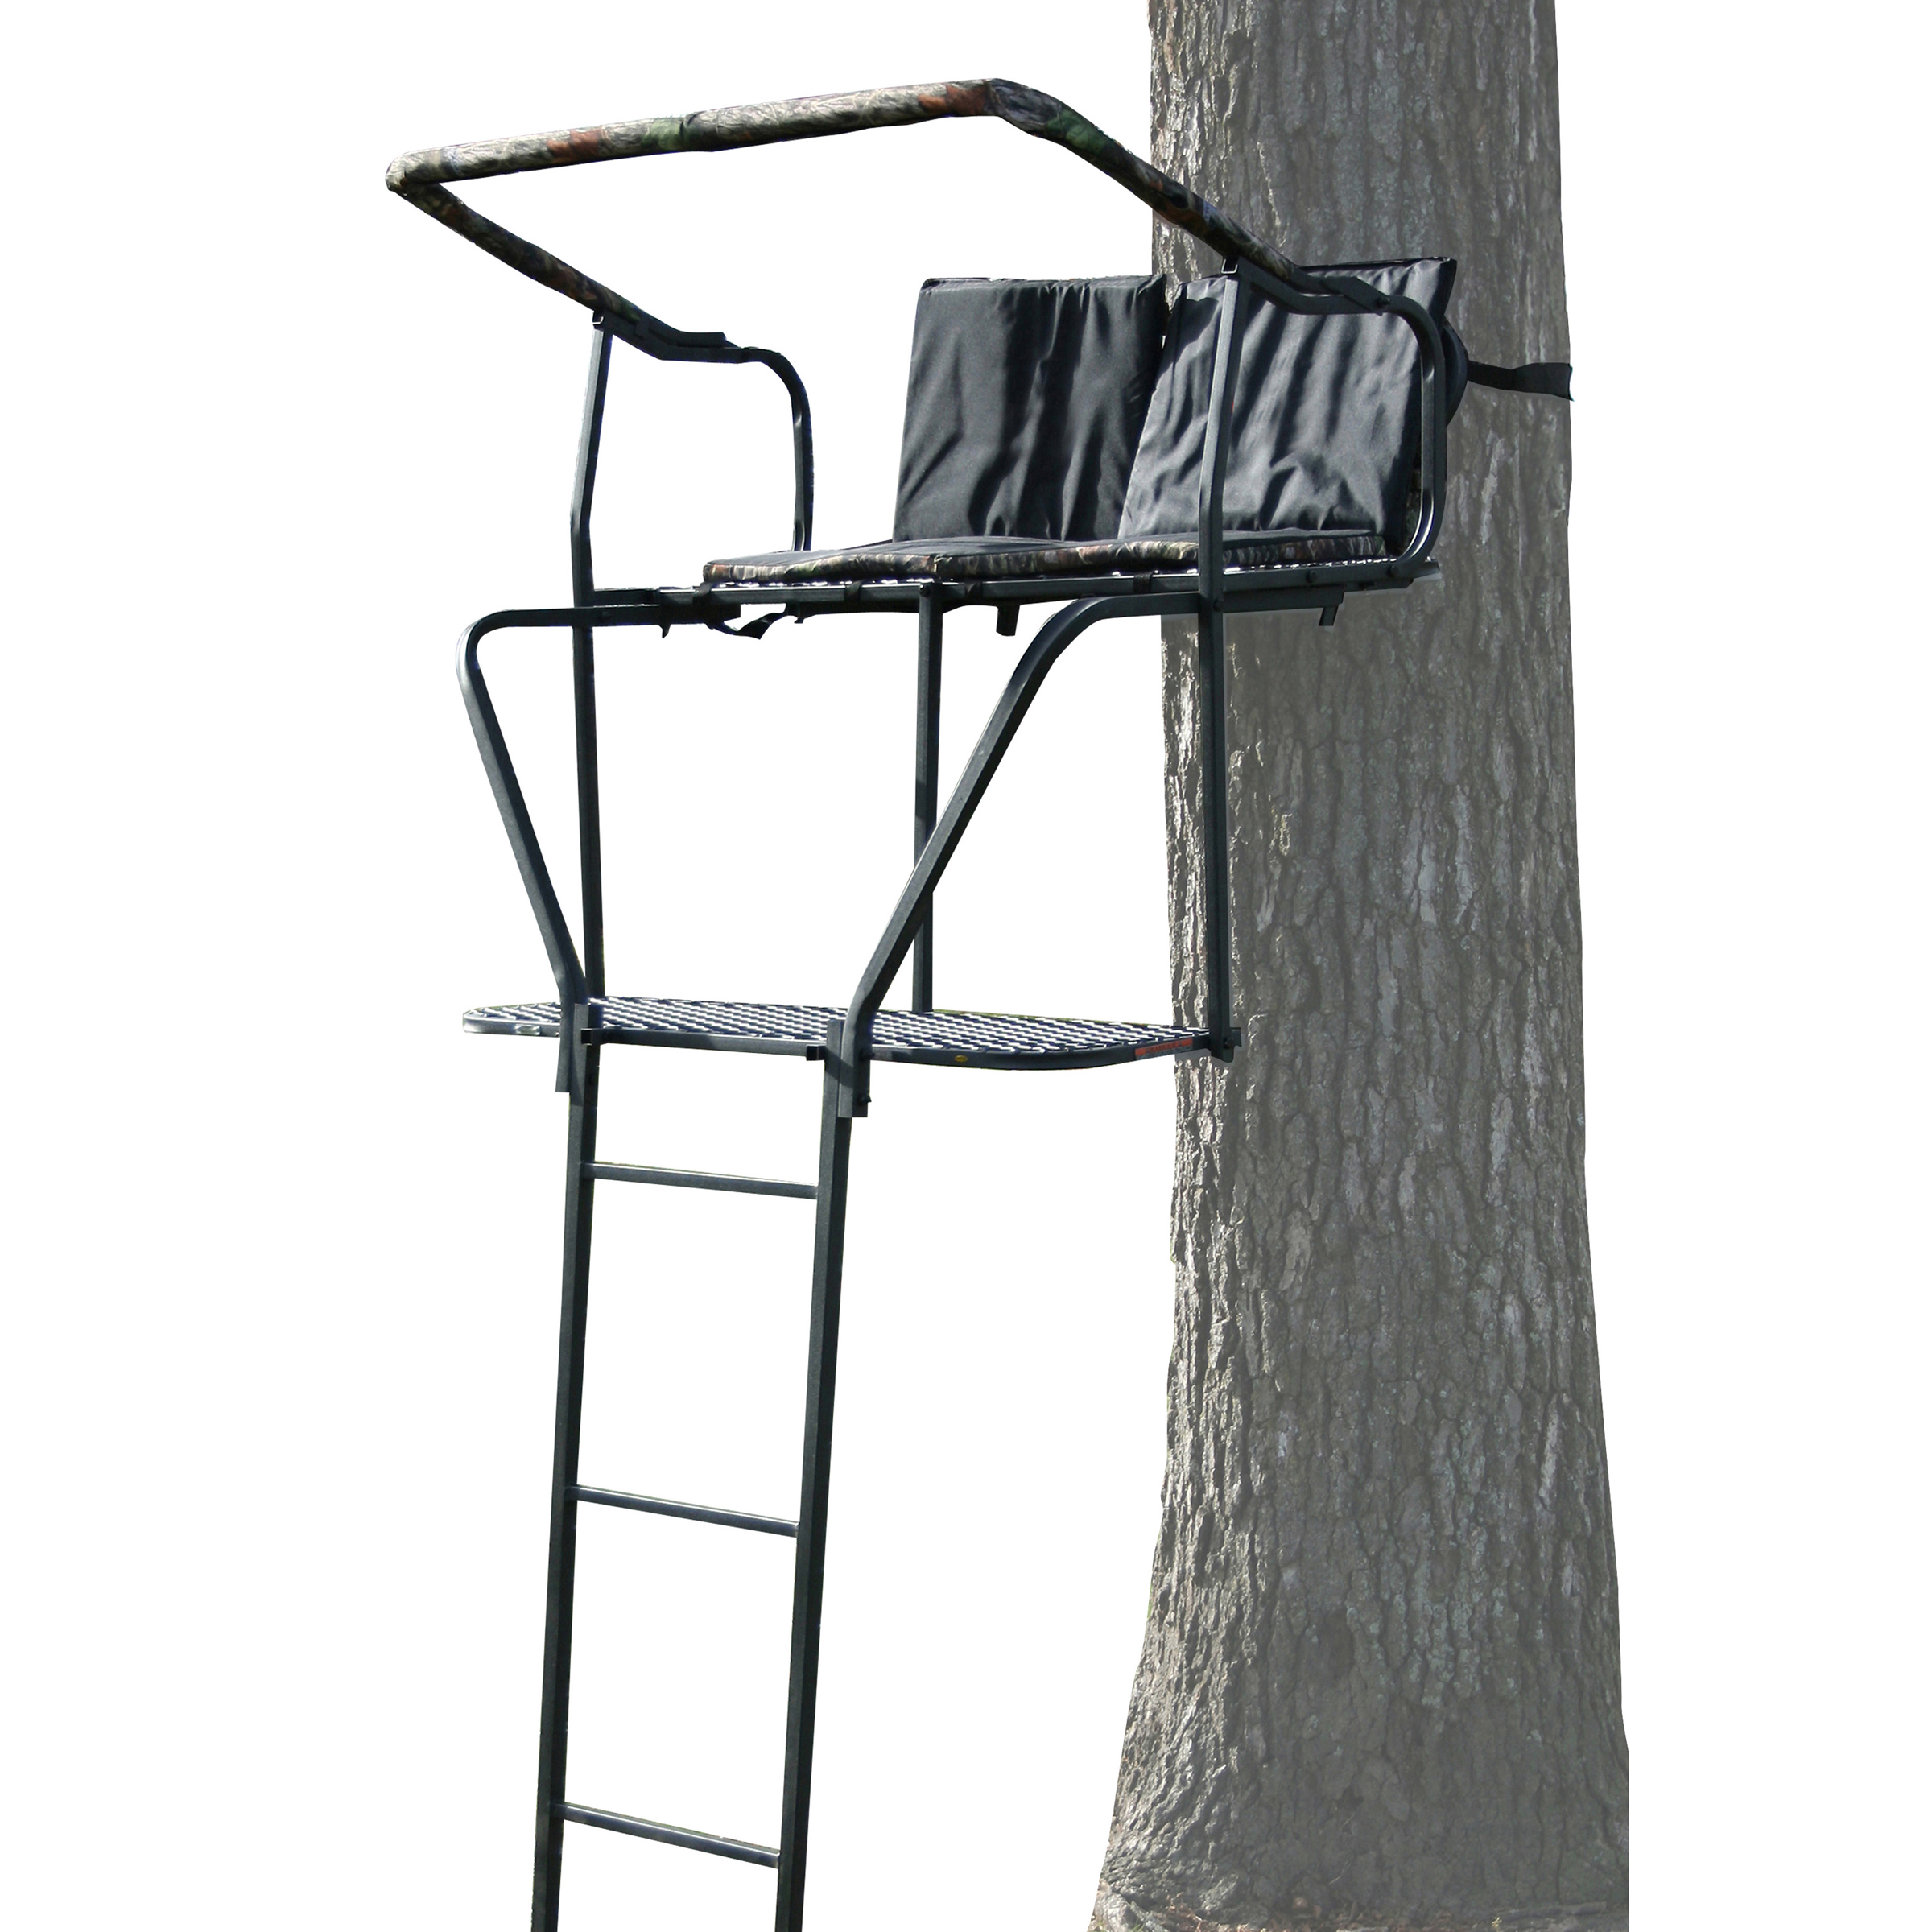 Buffalo Outdoor 16 Foot Deluxe 2-Person Ladder Stand - BC at Sears.com